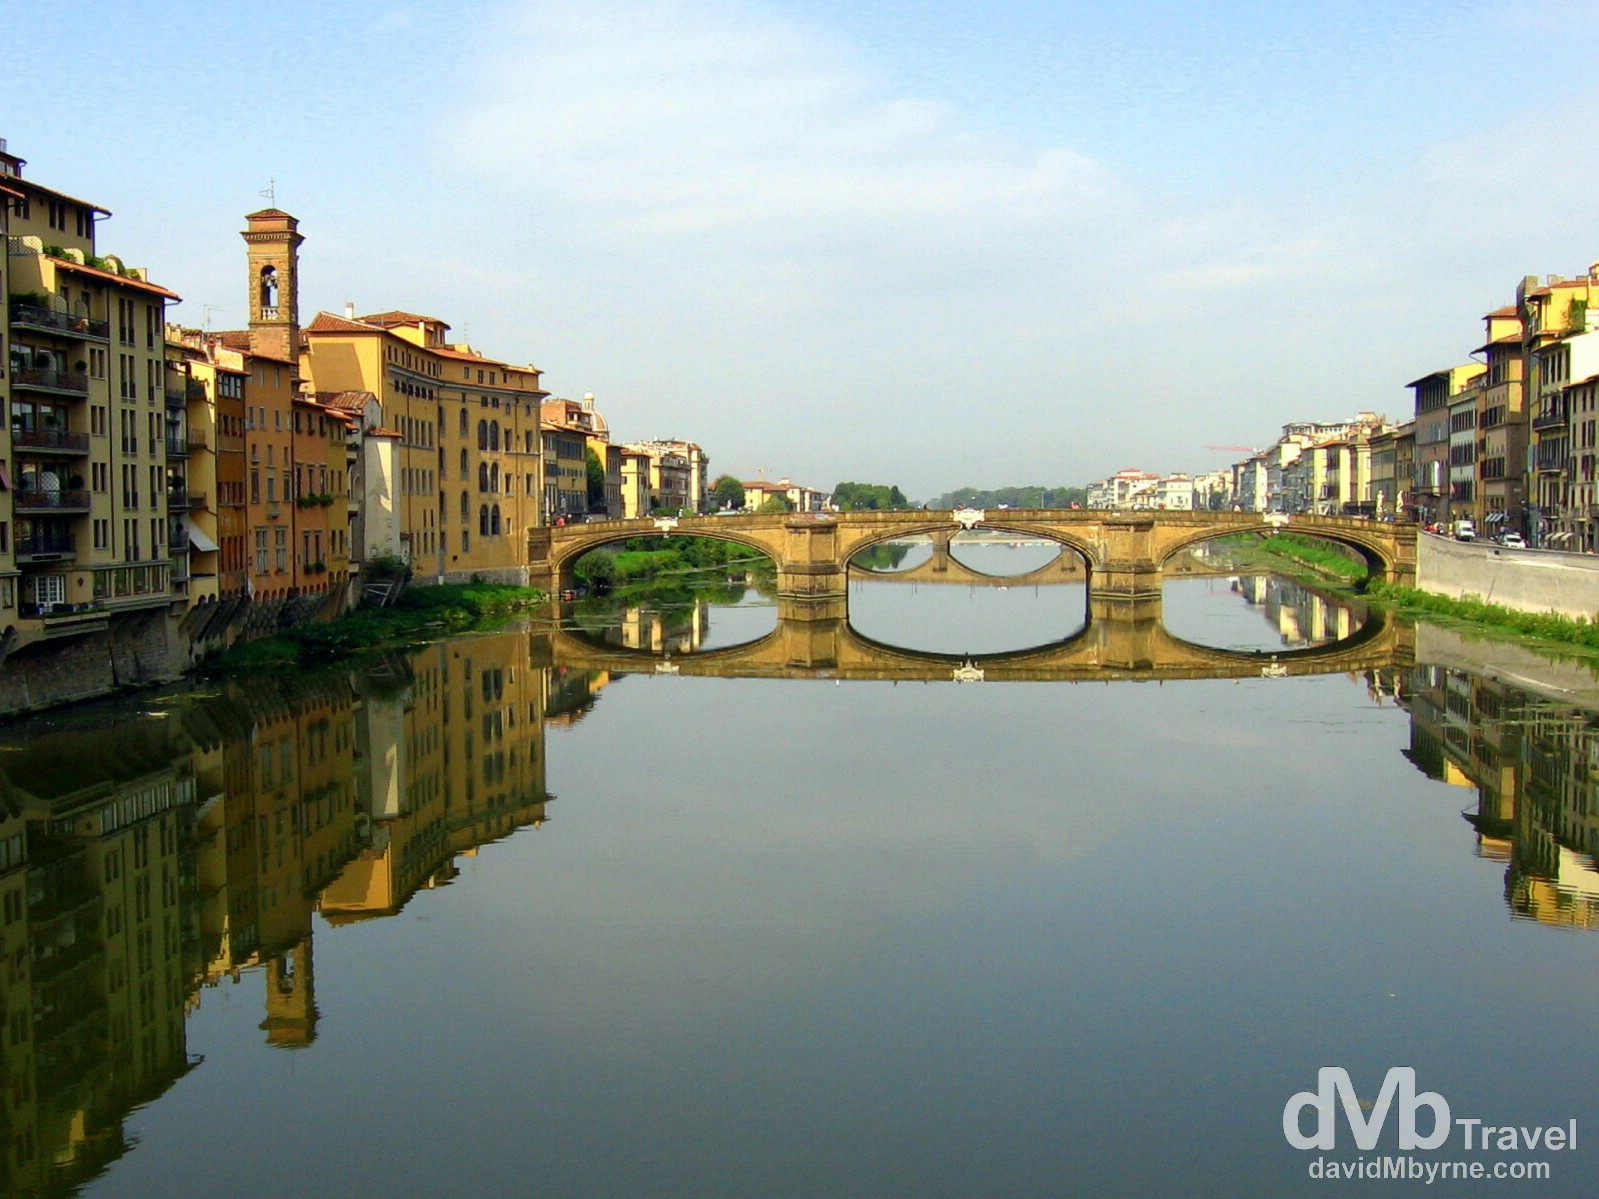 The Arno River in Florence, Tuscany, Italy. August 30th, 2007.